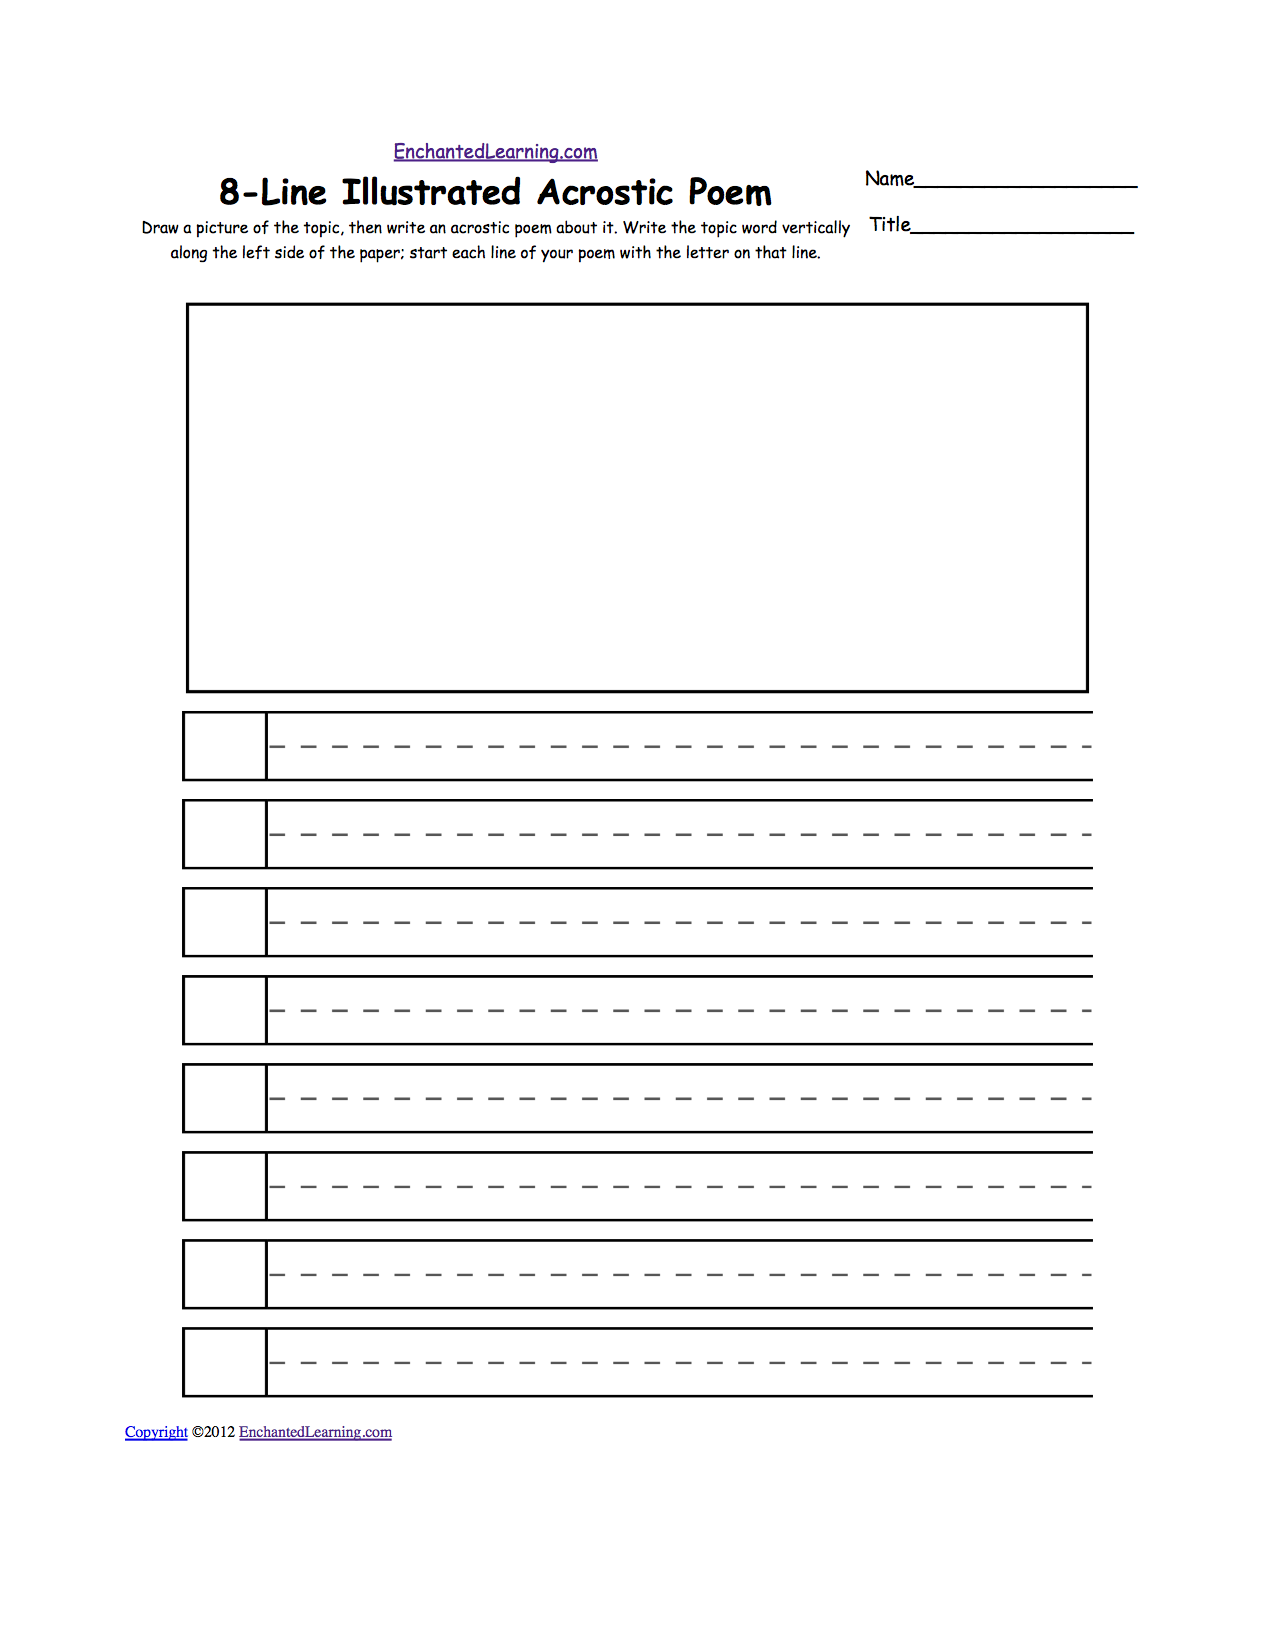 Printables Poem Worksheets blank illustrated acrostic poem worksheets handwriting lines pick a topic draw picture of it then write an about on dotted the word vertically along left s